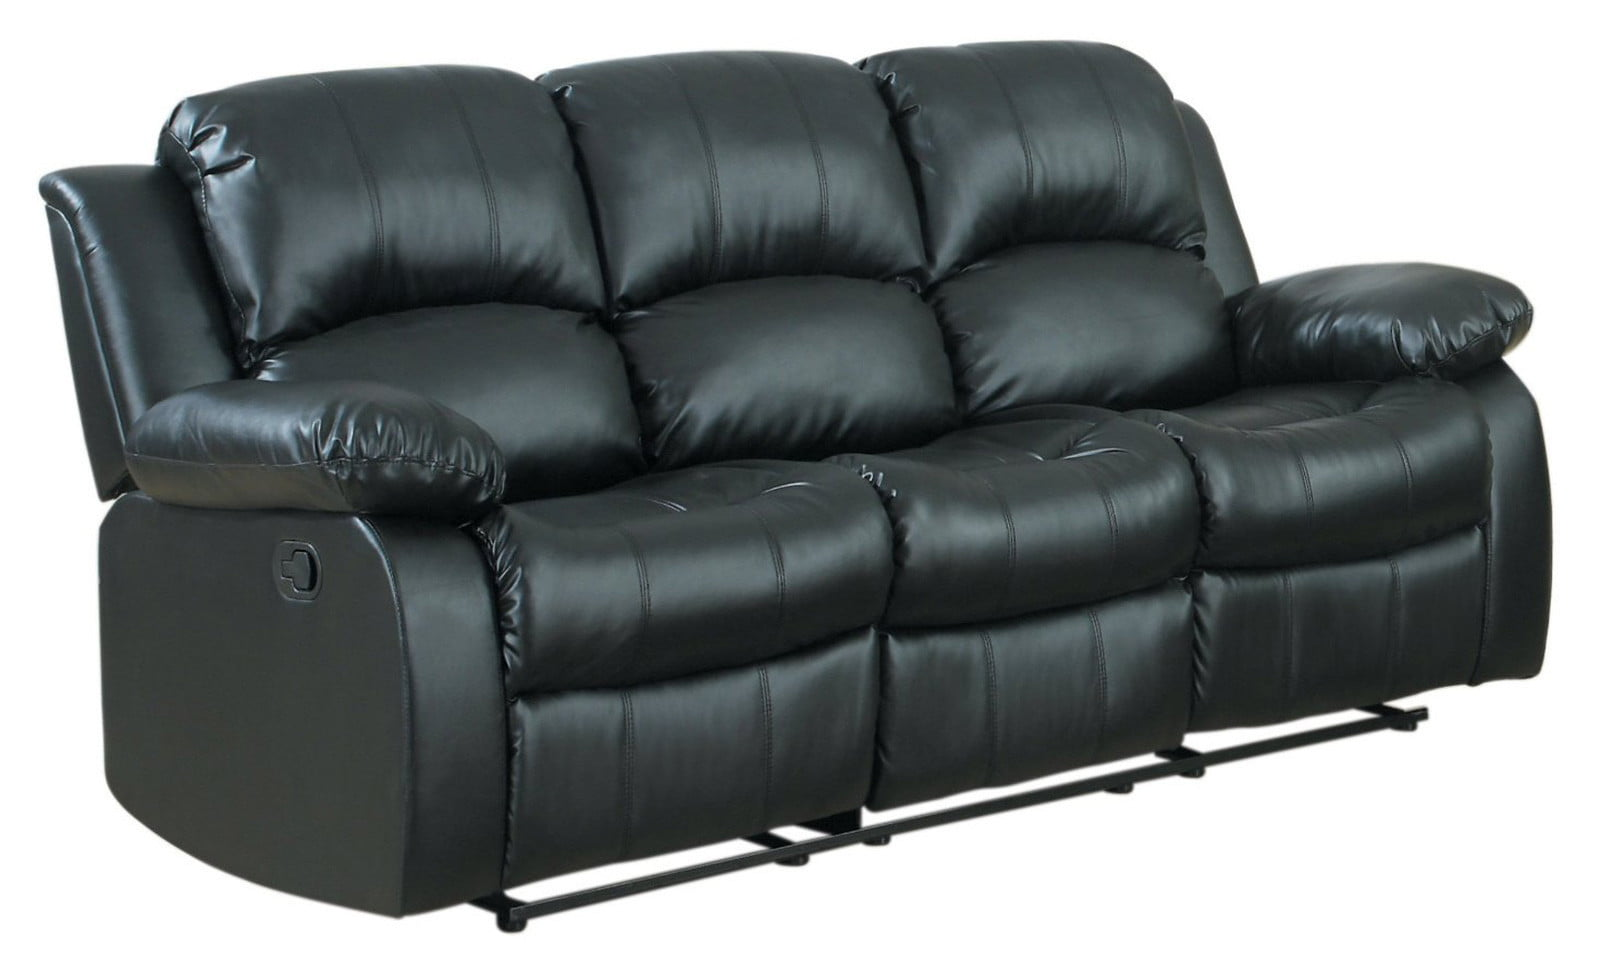 Classic 3 Seat Bonded Leather Double Recliner Sofa - Walmart.com